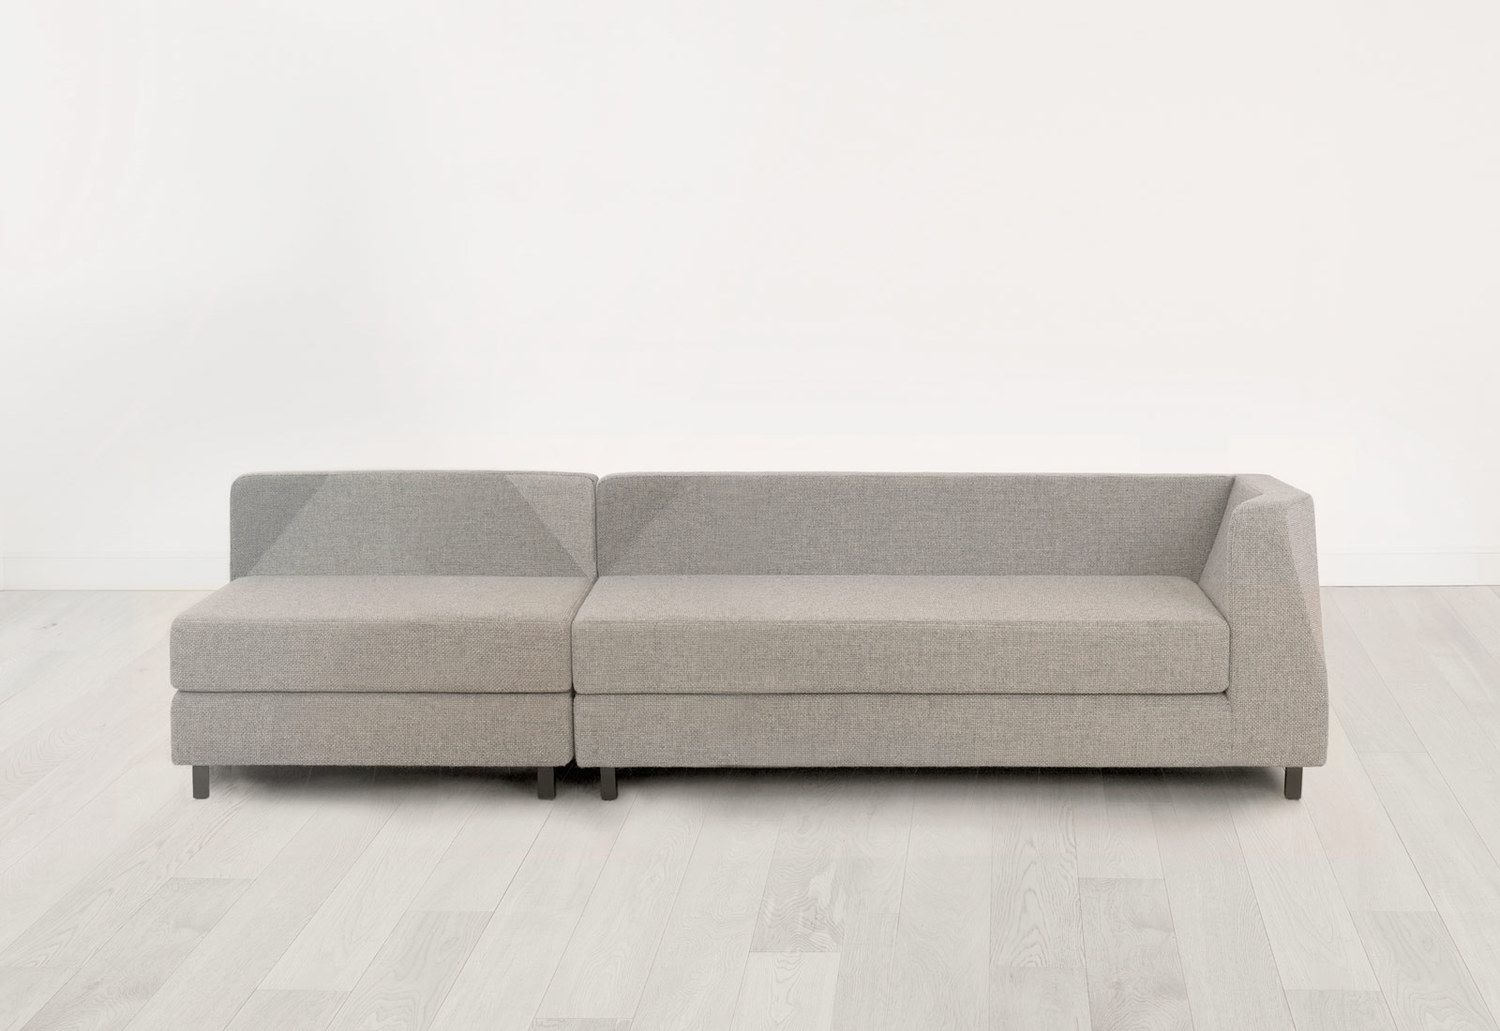 Ear Sofa Is A Minimal Design Created By Canada Based Designers St Ely